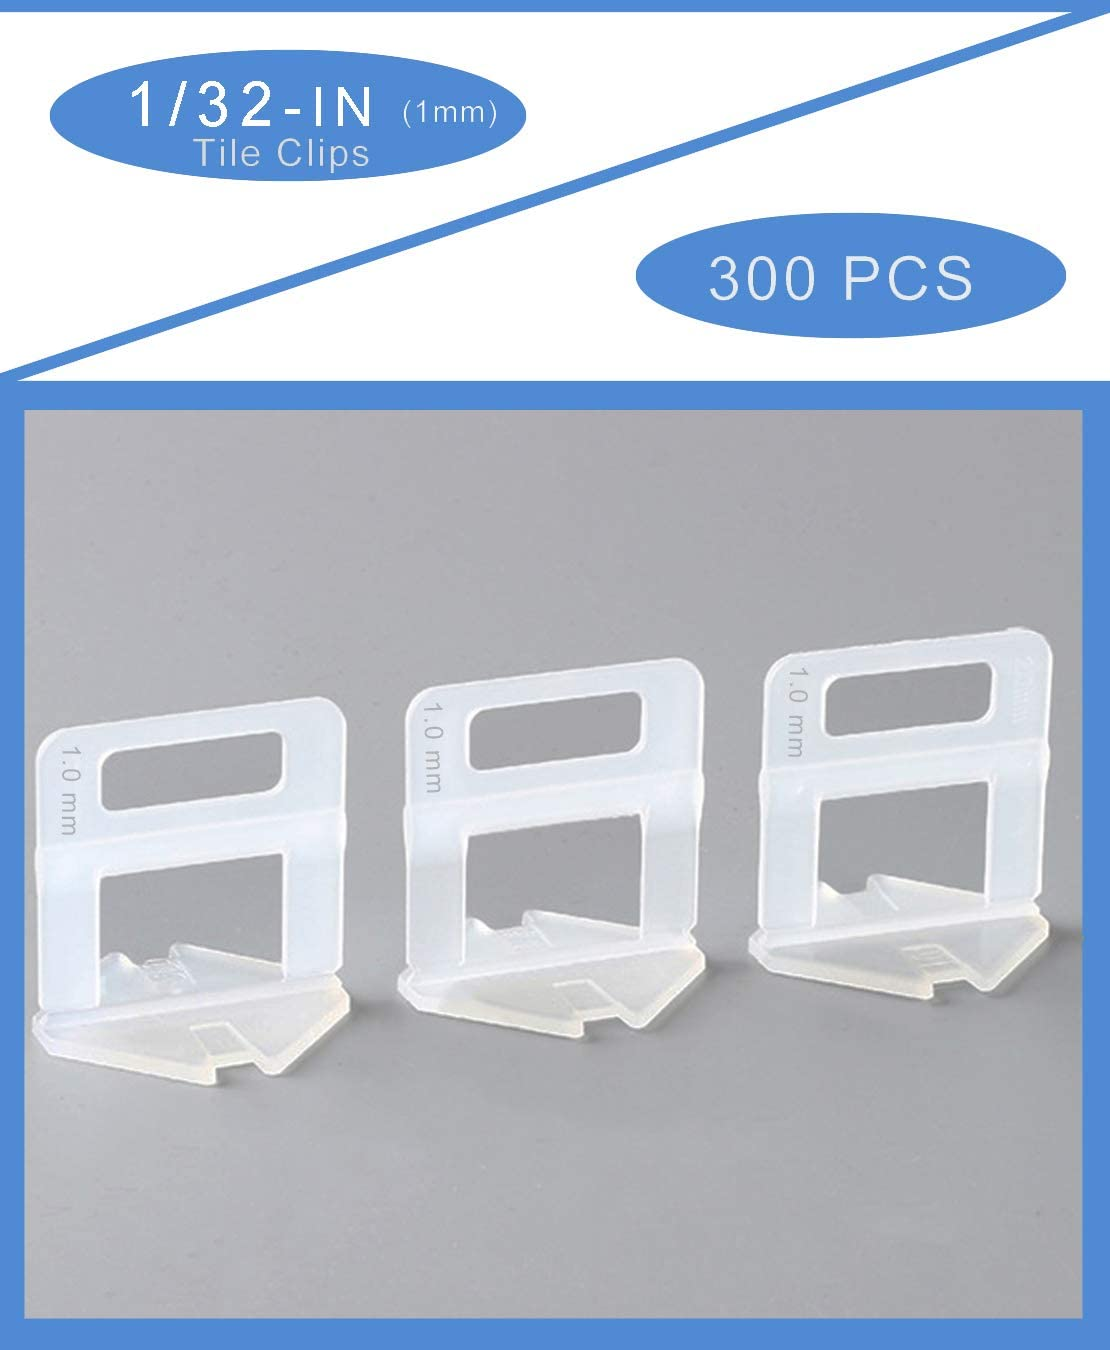 Aizami Tile Leveling System with Tile Clips for Floor Leveler Installation(Non-reusable,300 Pcs,1//8 3.0 mm)